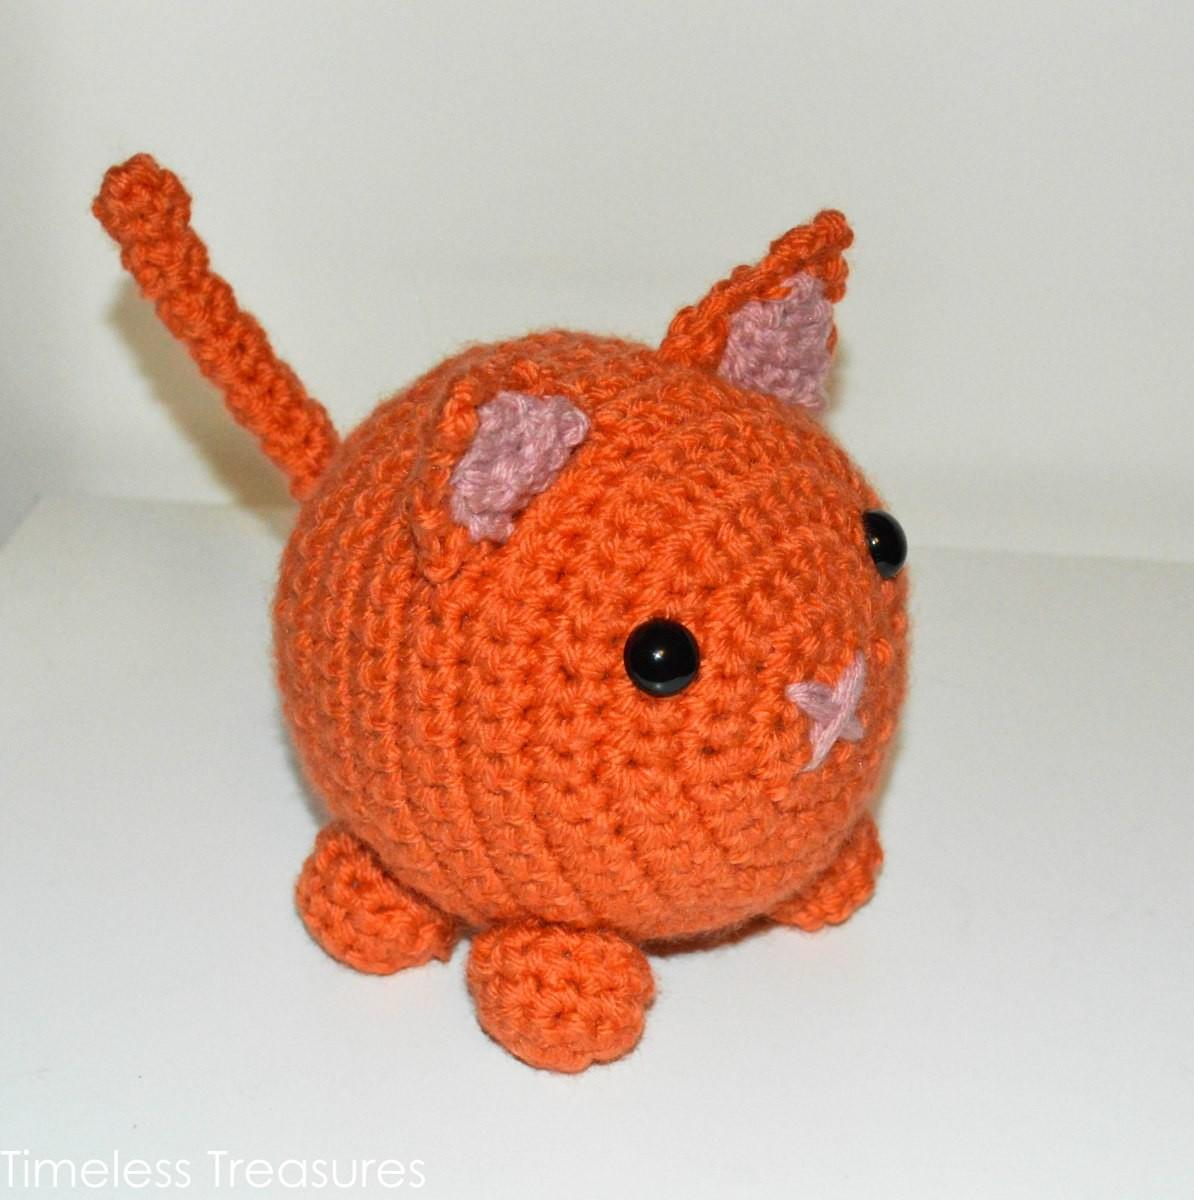 Chubby Amigurumi Kitty Pattern Knitting Crocheting